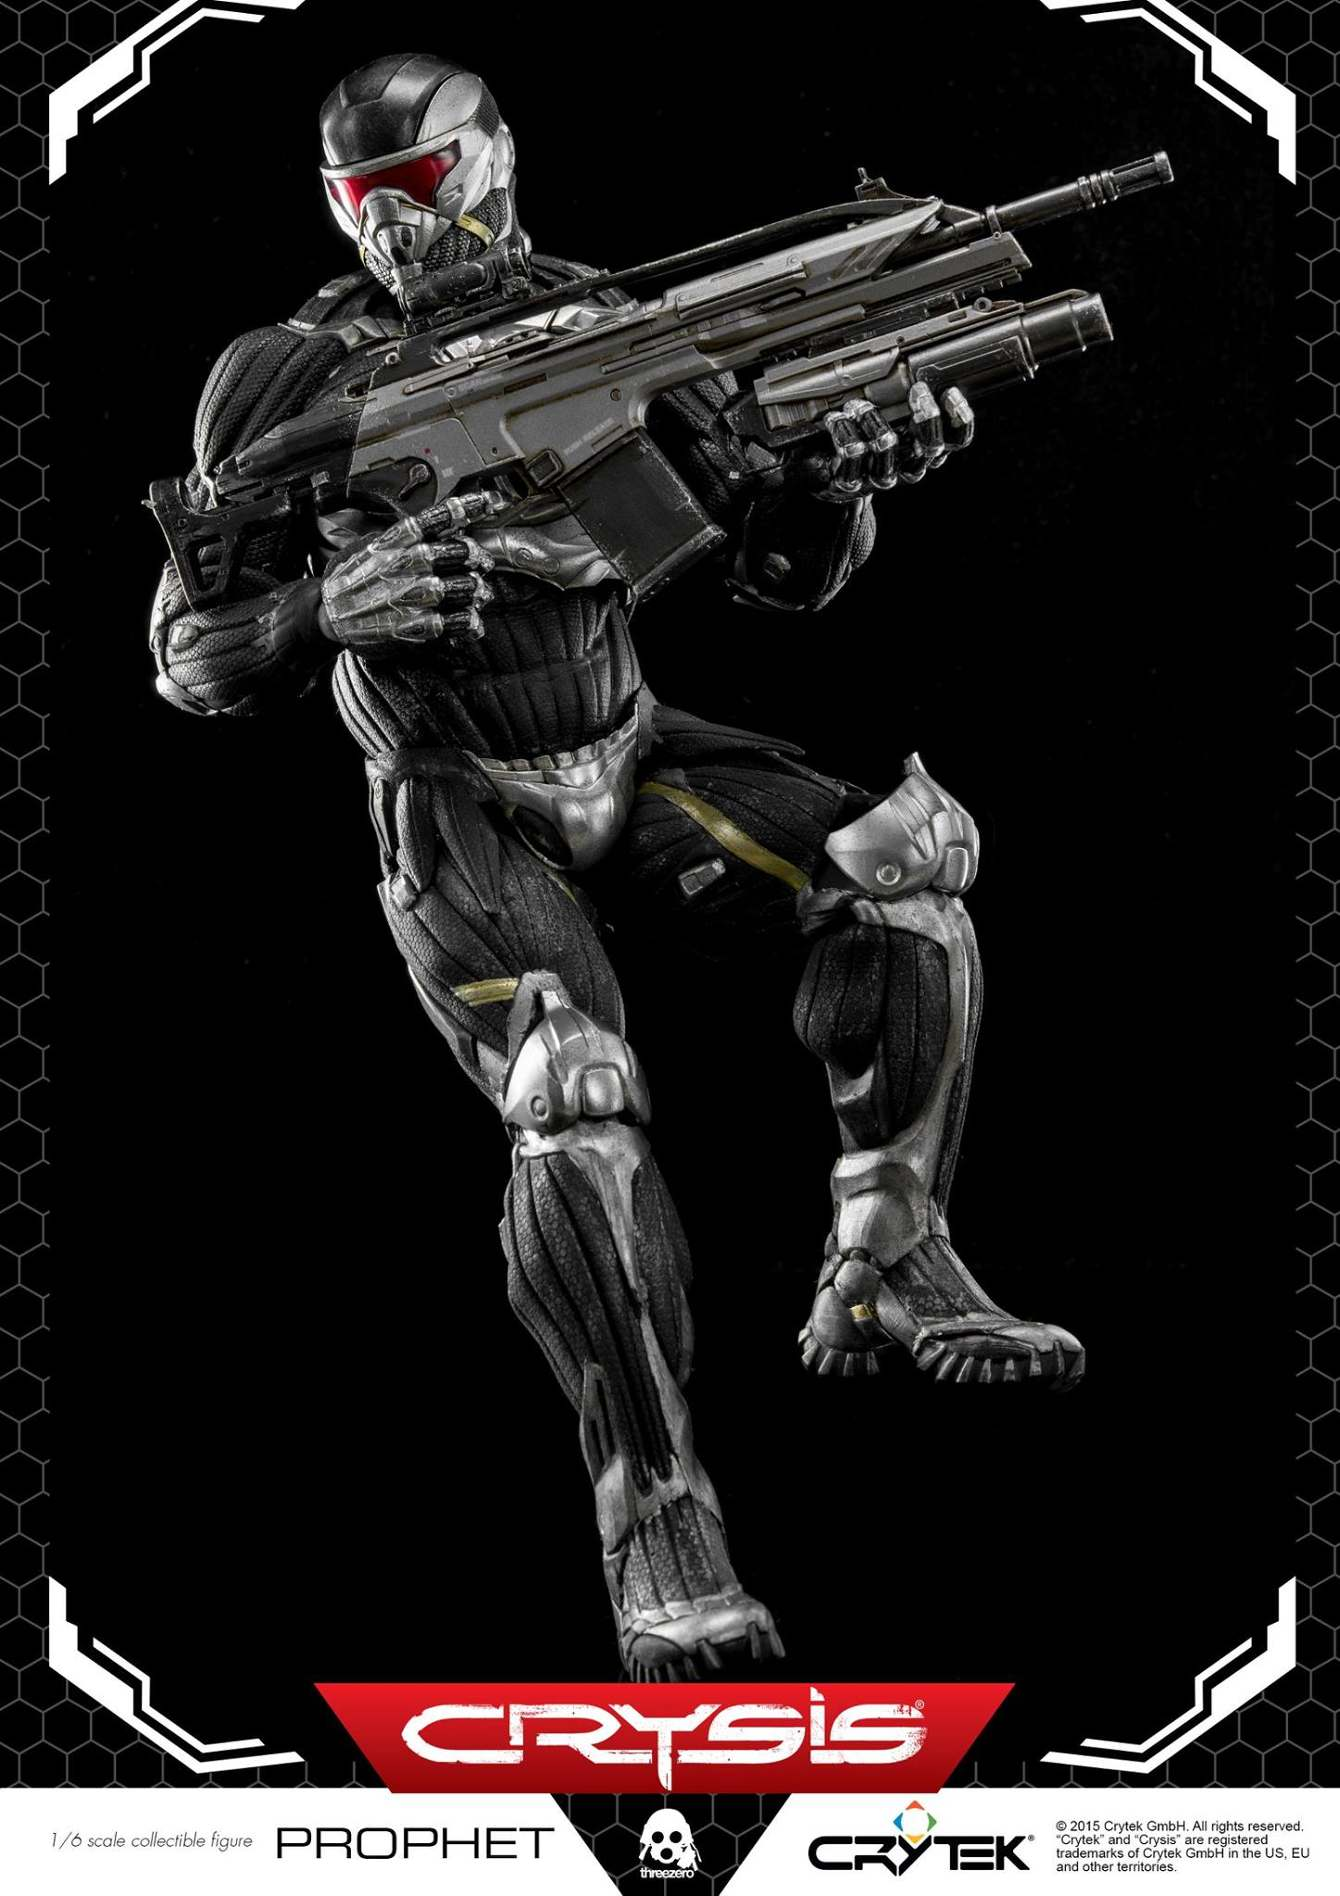 ThreeZero-Crysis-video-game-Prophet-CRY15_1340_c.jpg